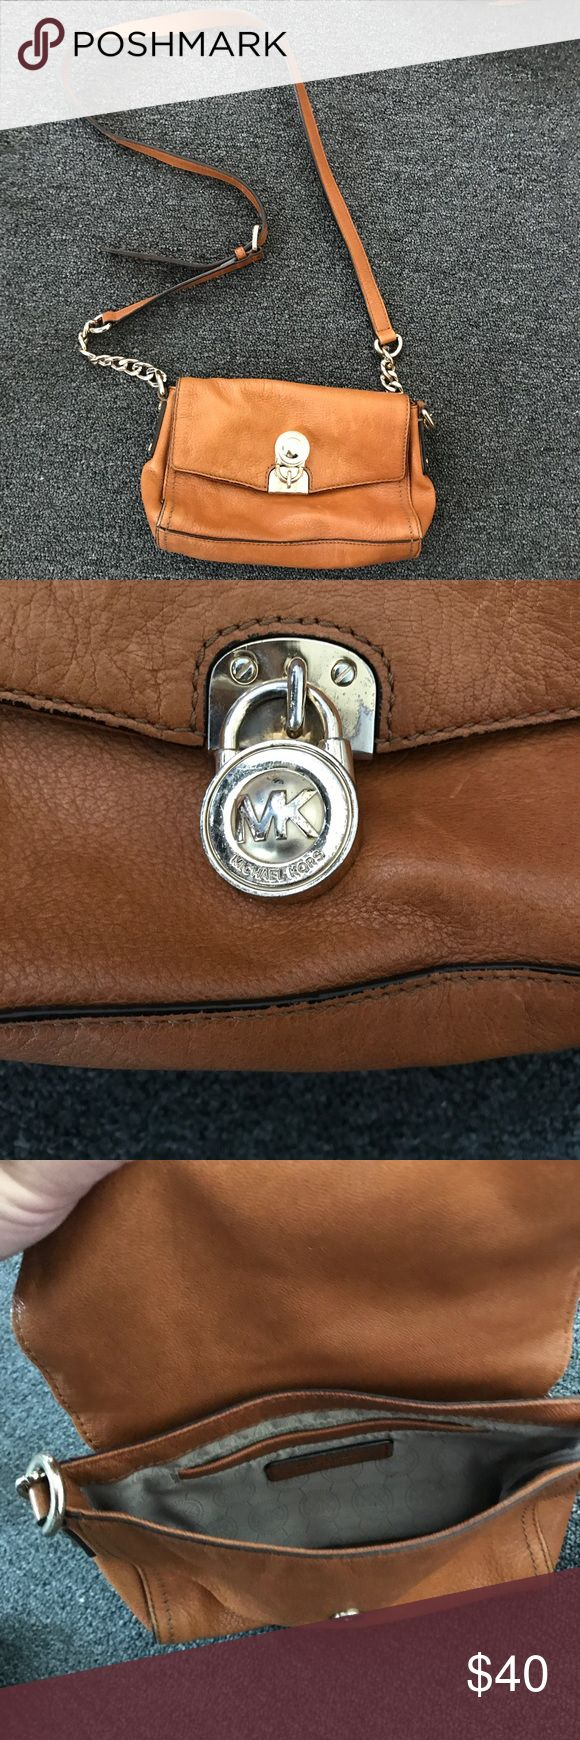 Michael kors Hamilton small messenger bag Michael Kors Hamilton small messenger bag in luggage brown. Preowned bag. The gold coloring is coming off slightly on the lock and clasp but otherwise in excellent condition. Has a lot of life left in it Bags Crossbody Bags